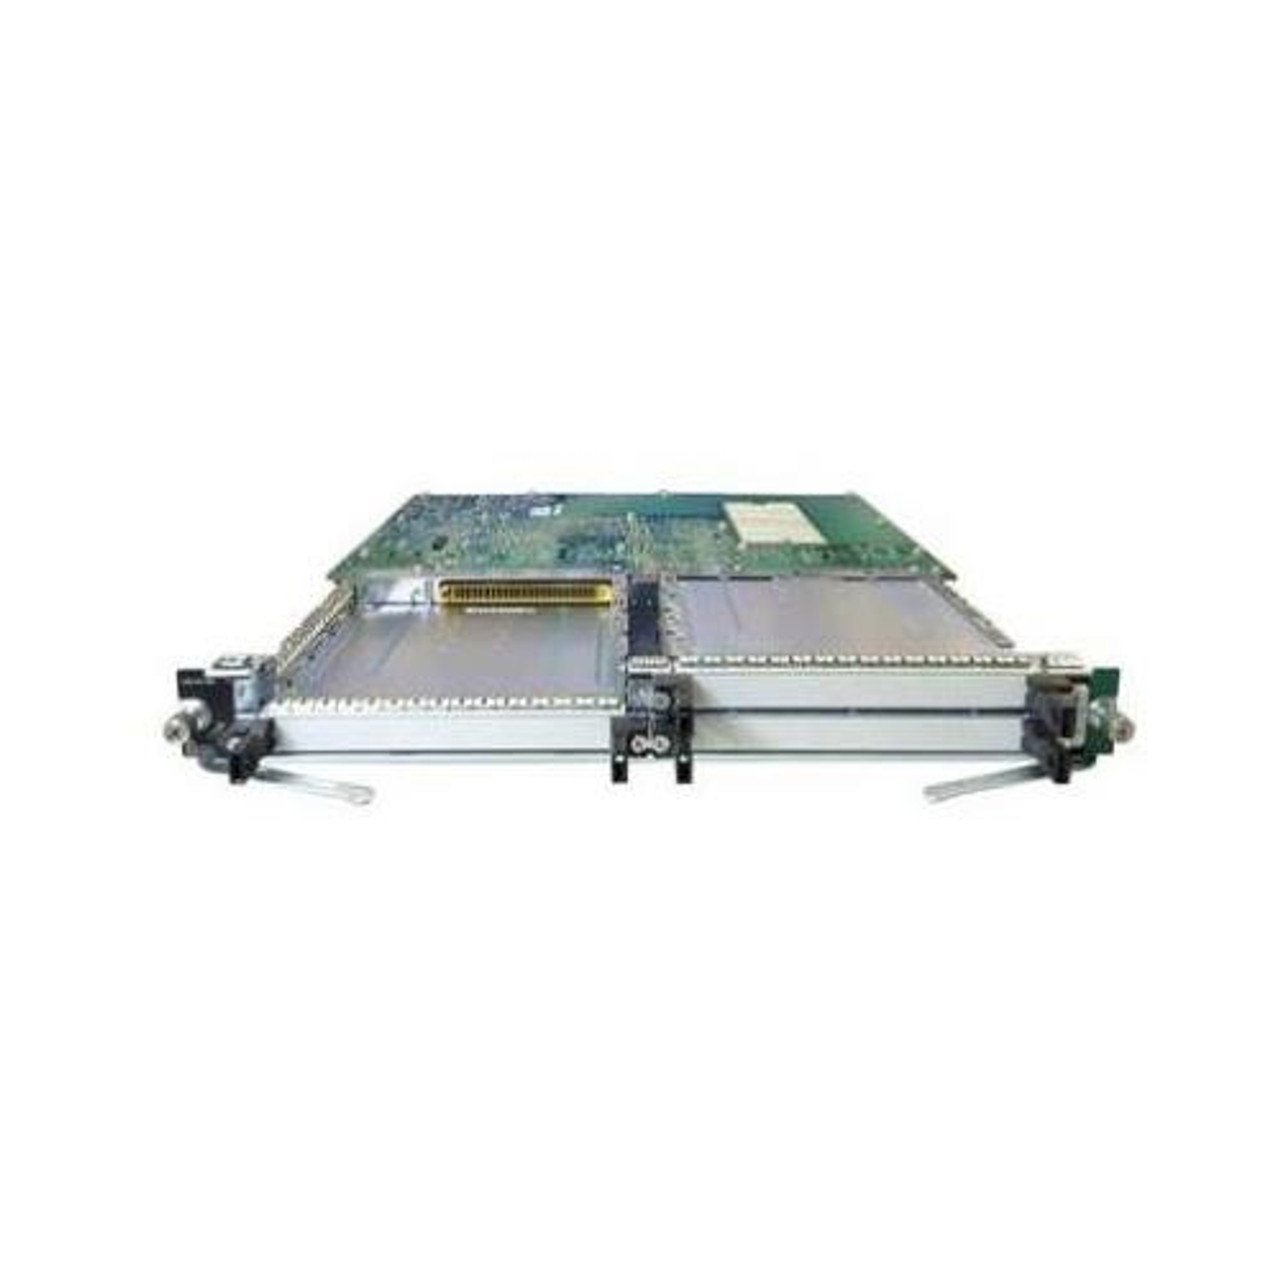 UCSB-5108-AC2-UPG Cisco UCS 5108 Blade Server AC2 Chassis/0 PSU/8 Fans/0  FEX (Refurbished)